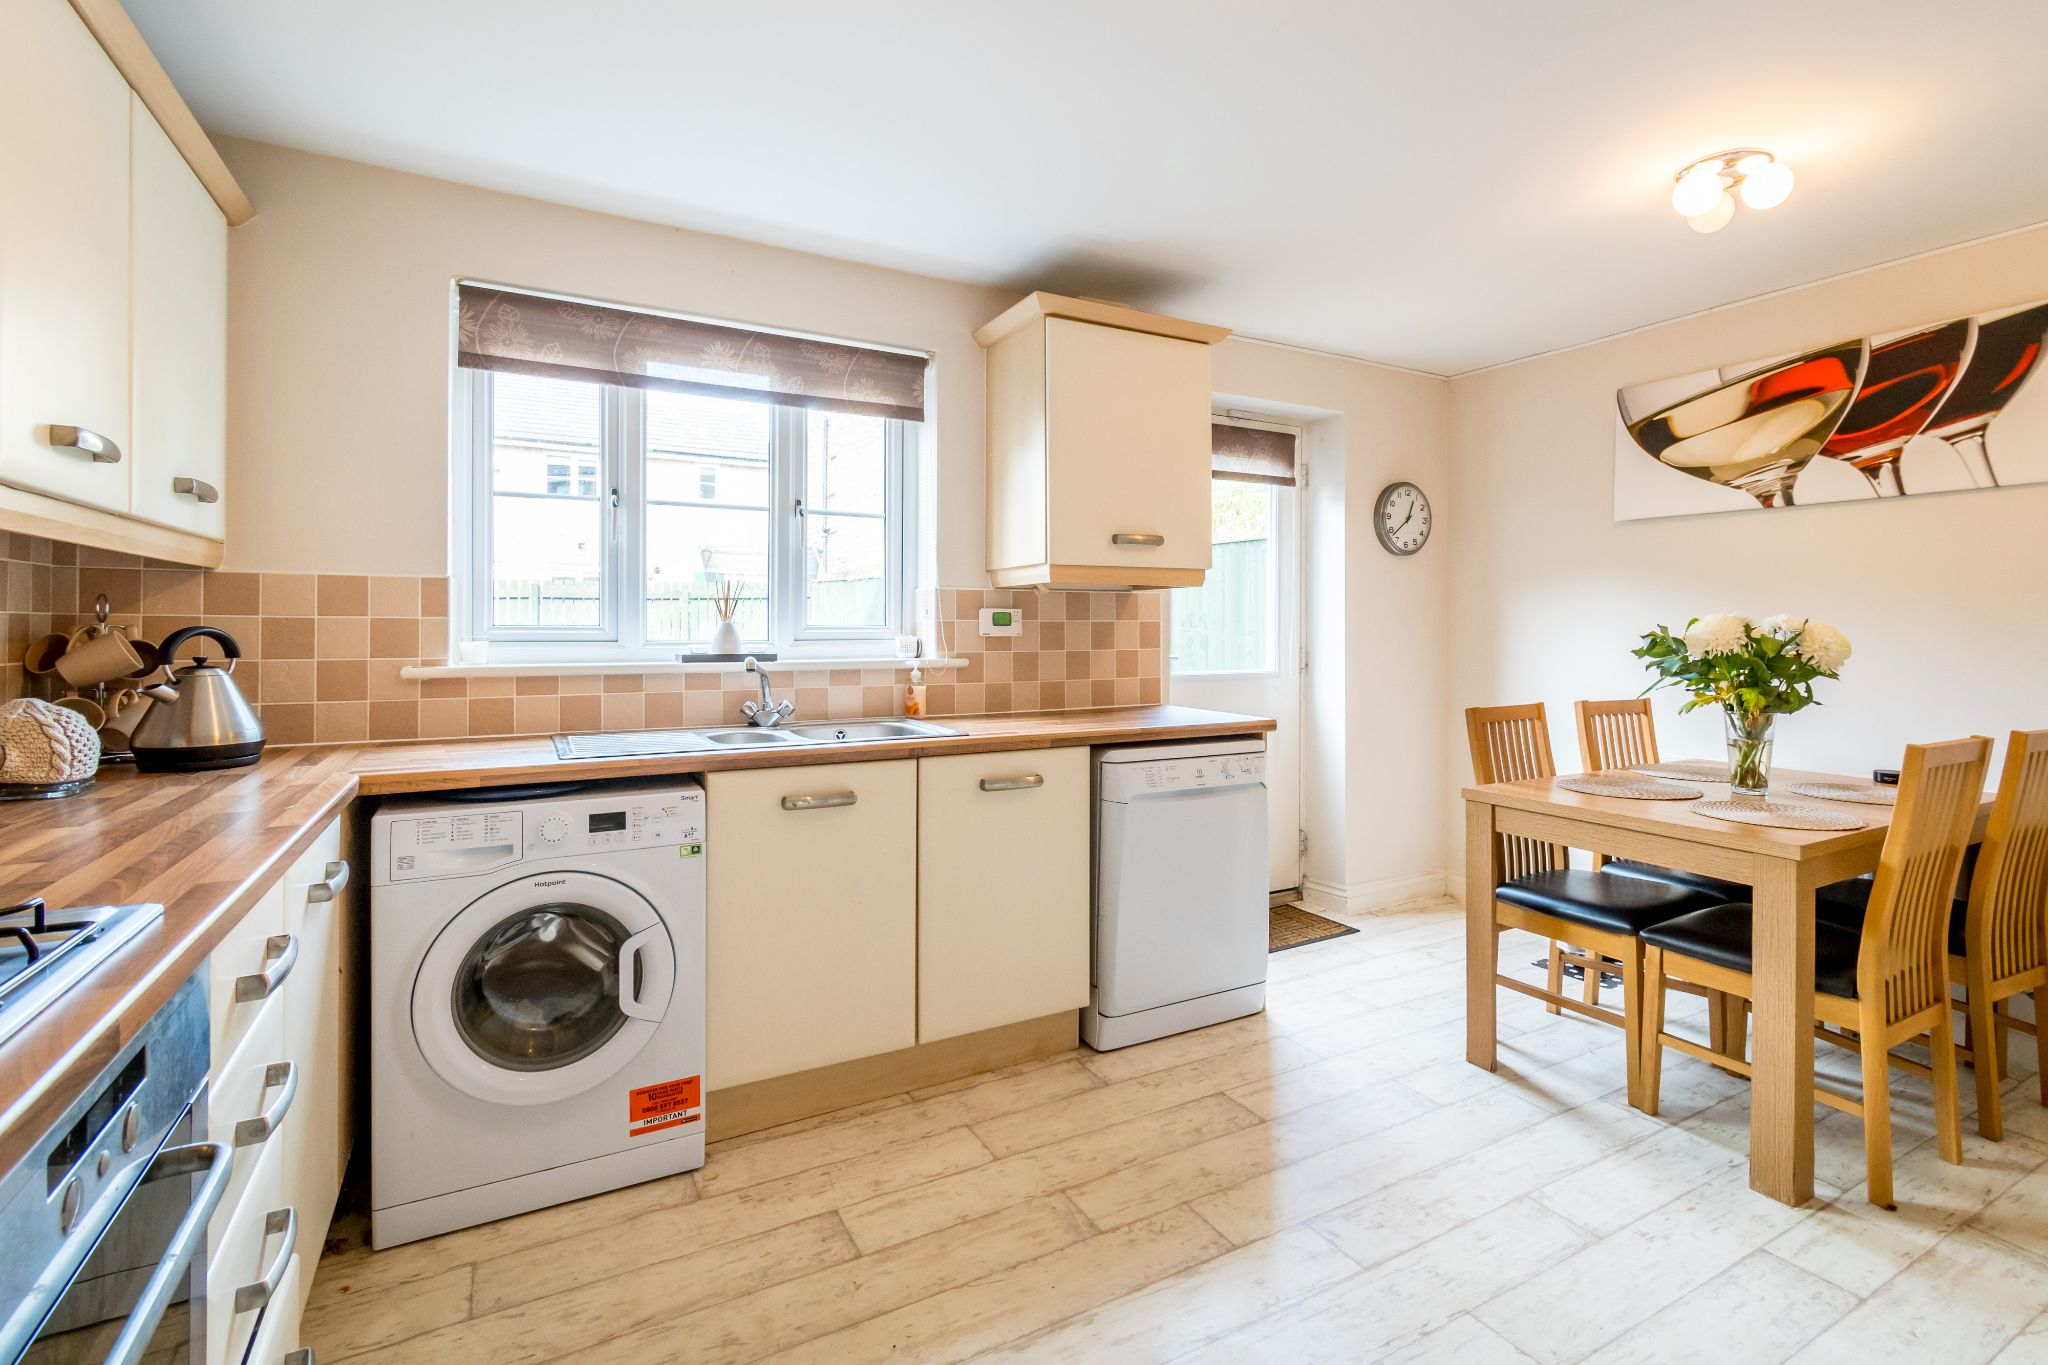 4 bedroom mid terraced house SSTC in Brighouse - Photograph 10